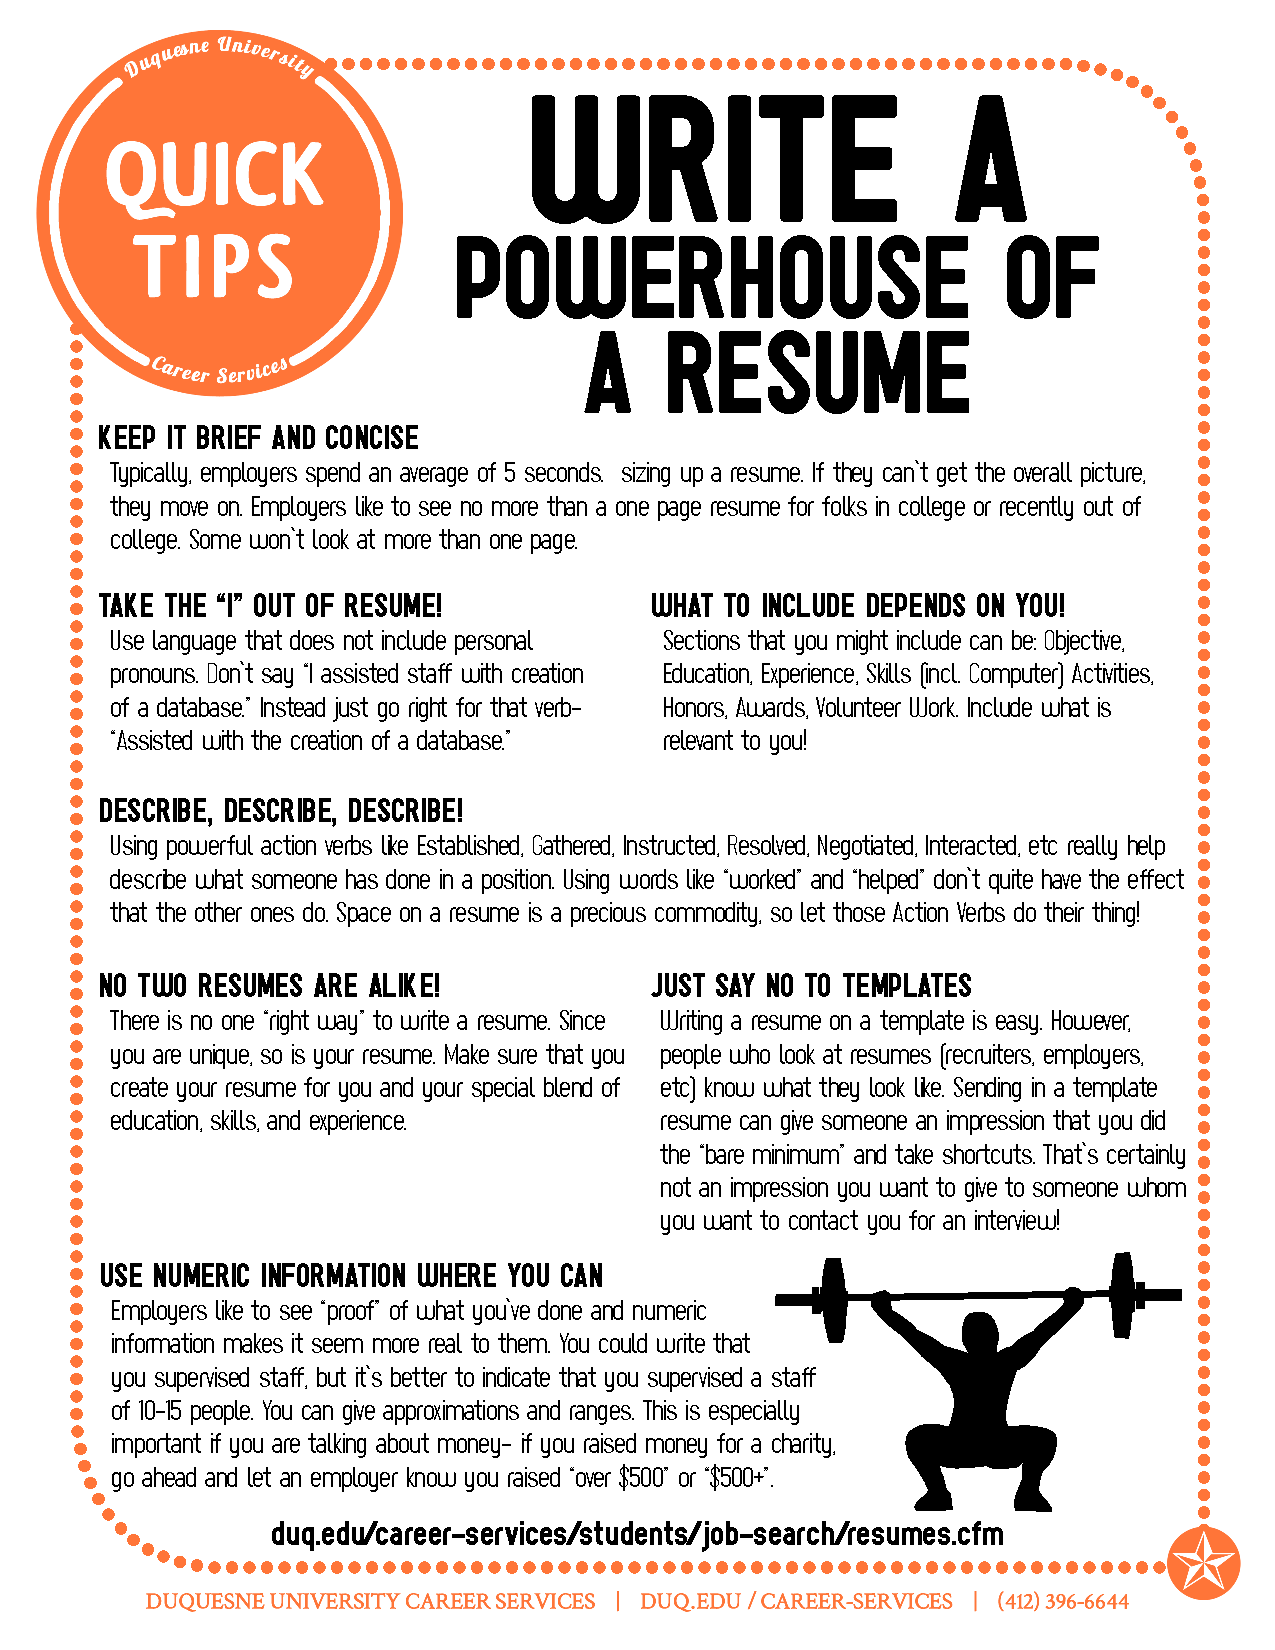 Best Words For Resume Resume & Cv Write A Powerhouse Of A Resume Learn To Write A Resume .